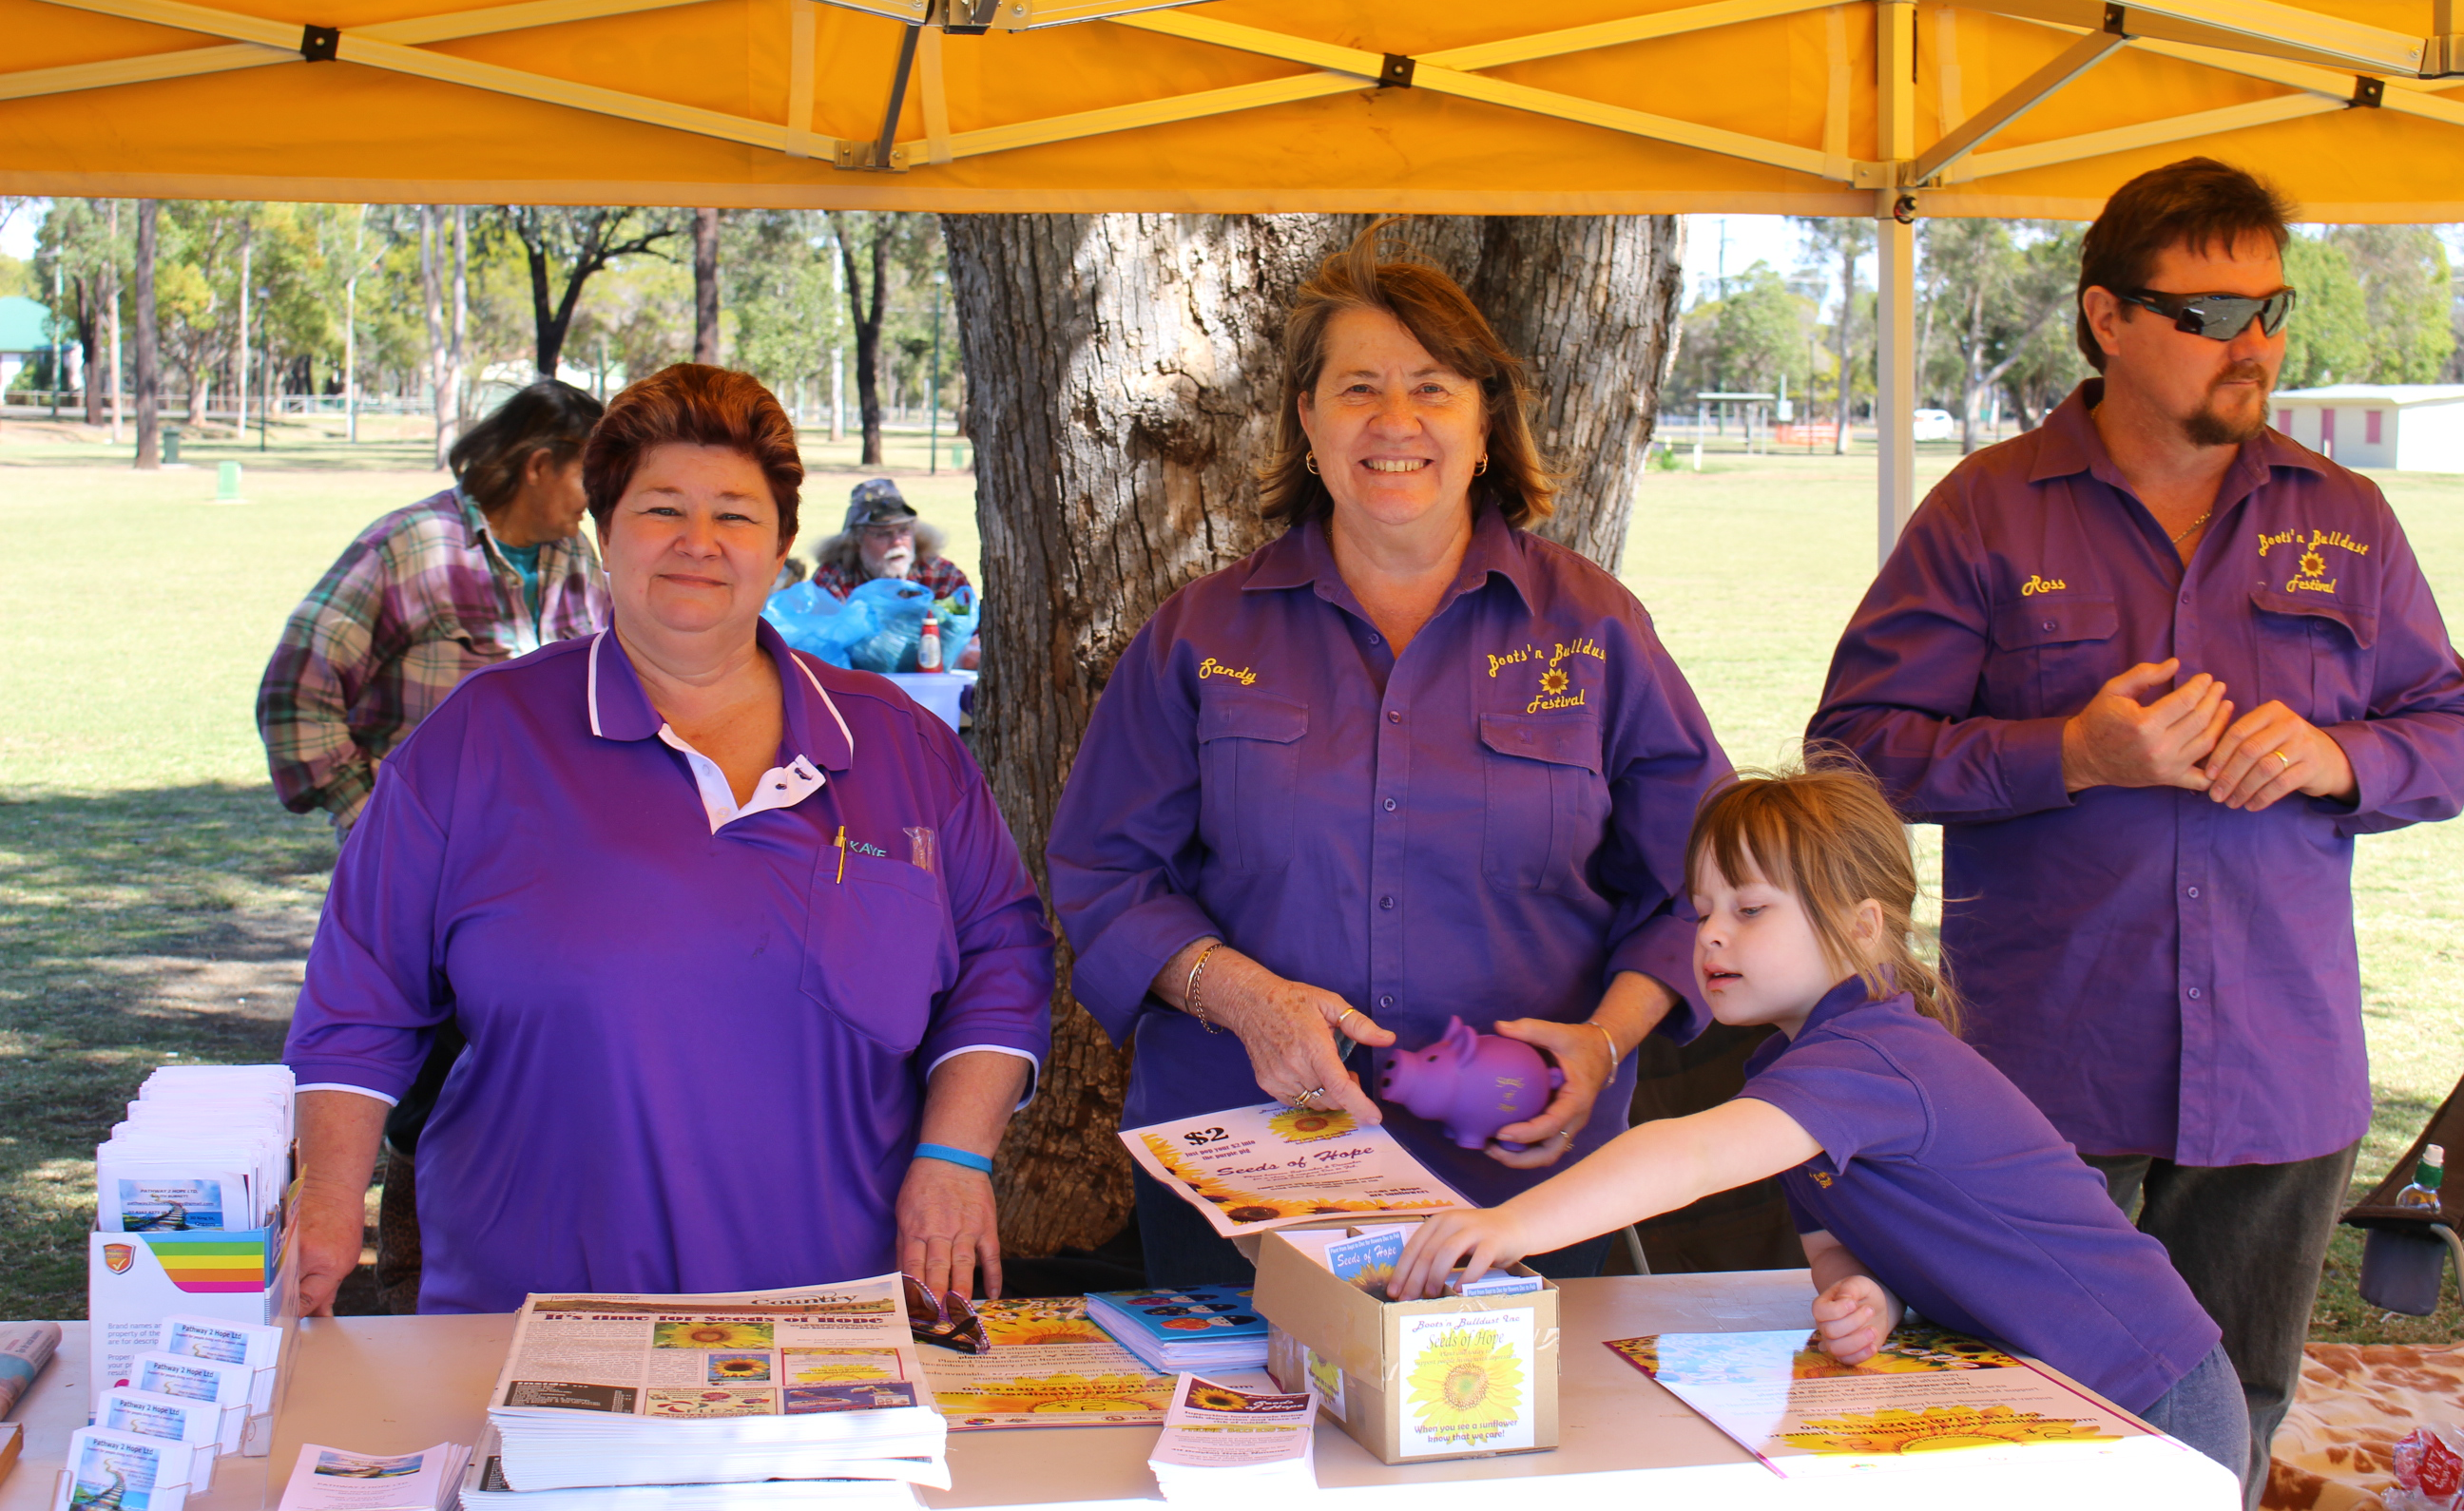 Pathway2Hope's Kaye Hibbs and Sandy Towell of Seeds of Hope at the Kingaroy community barbecue.